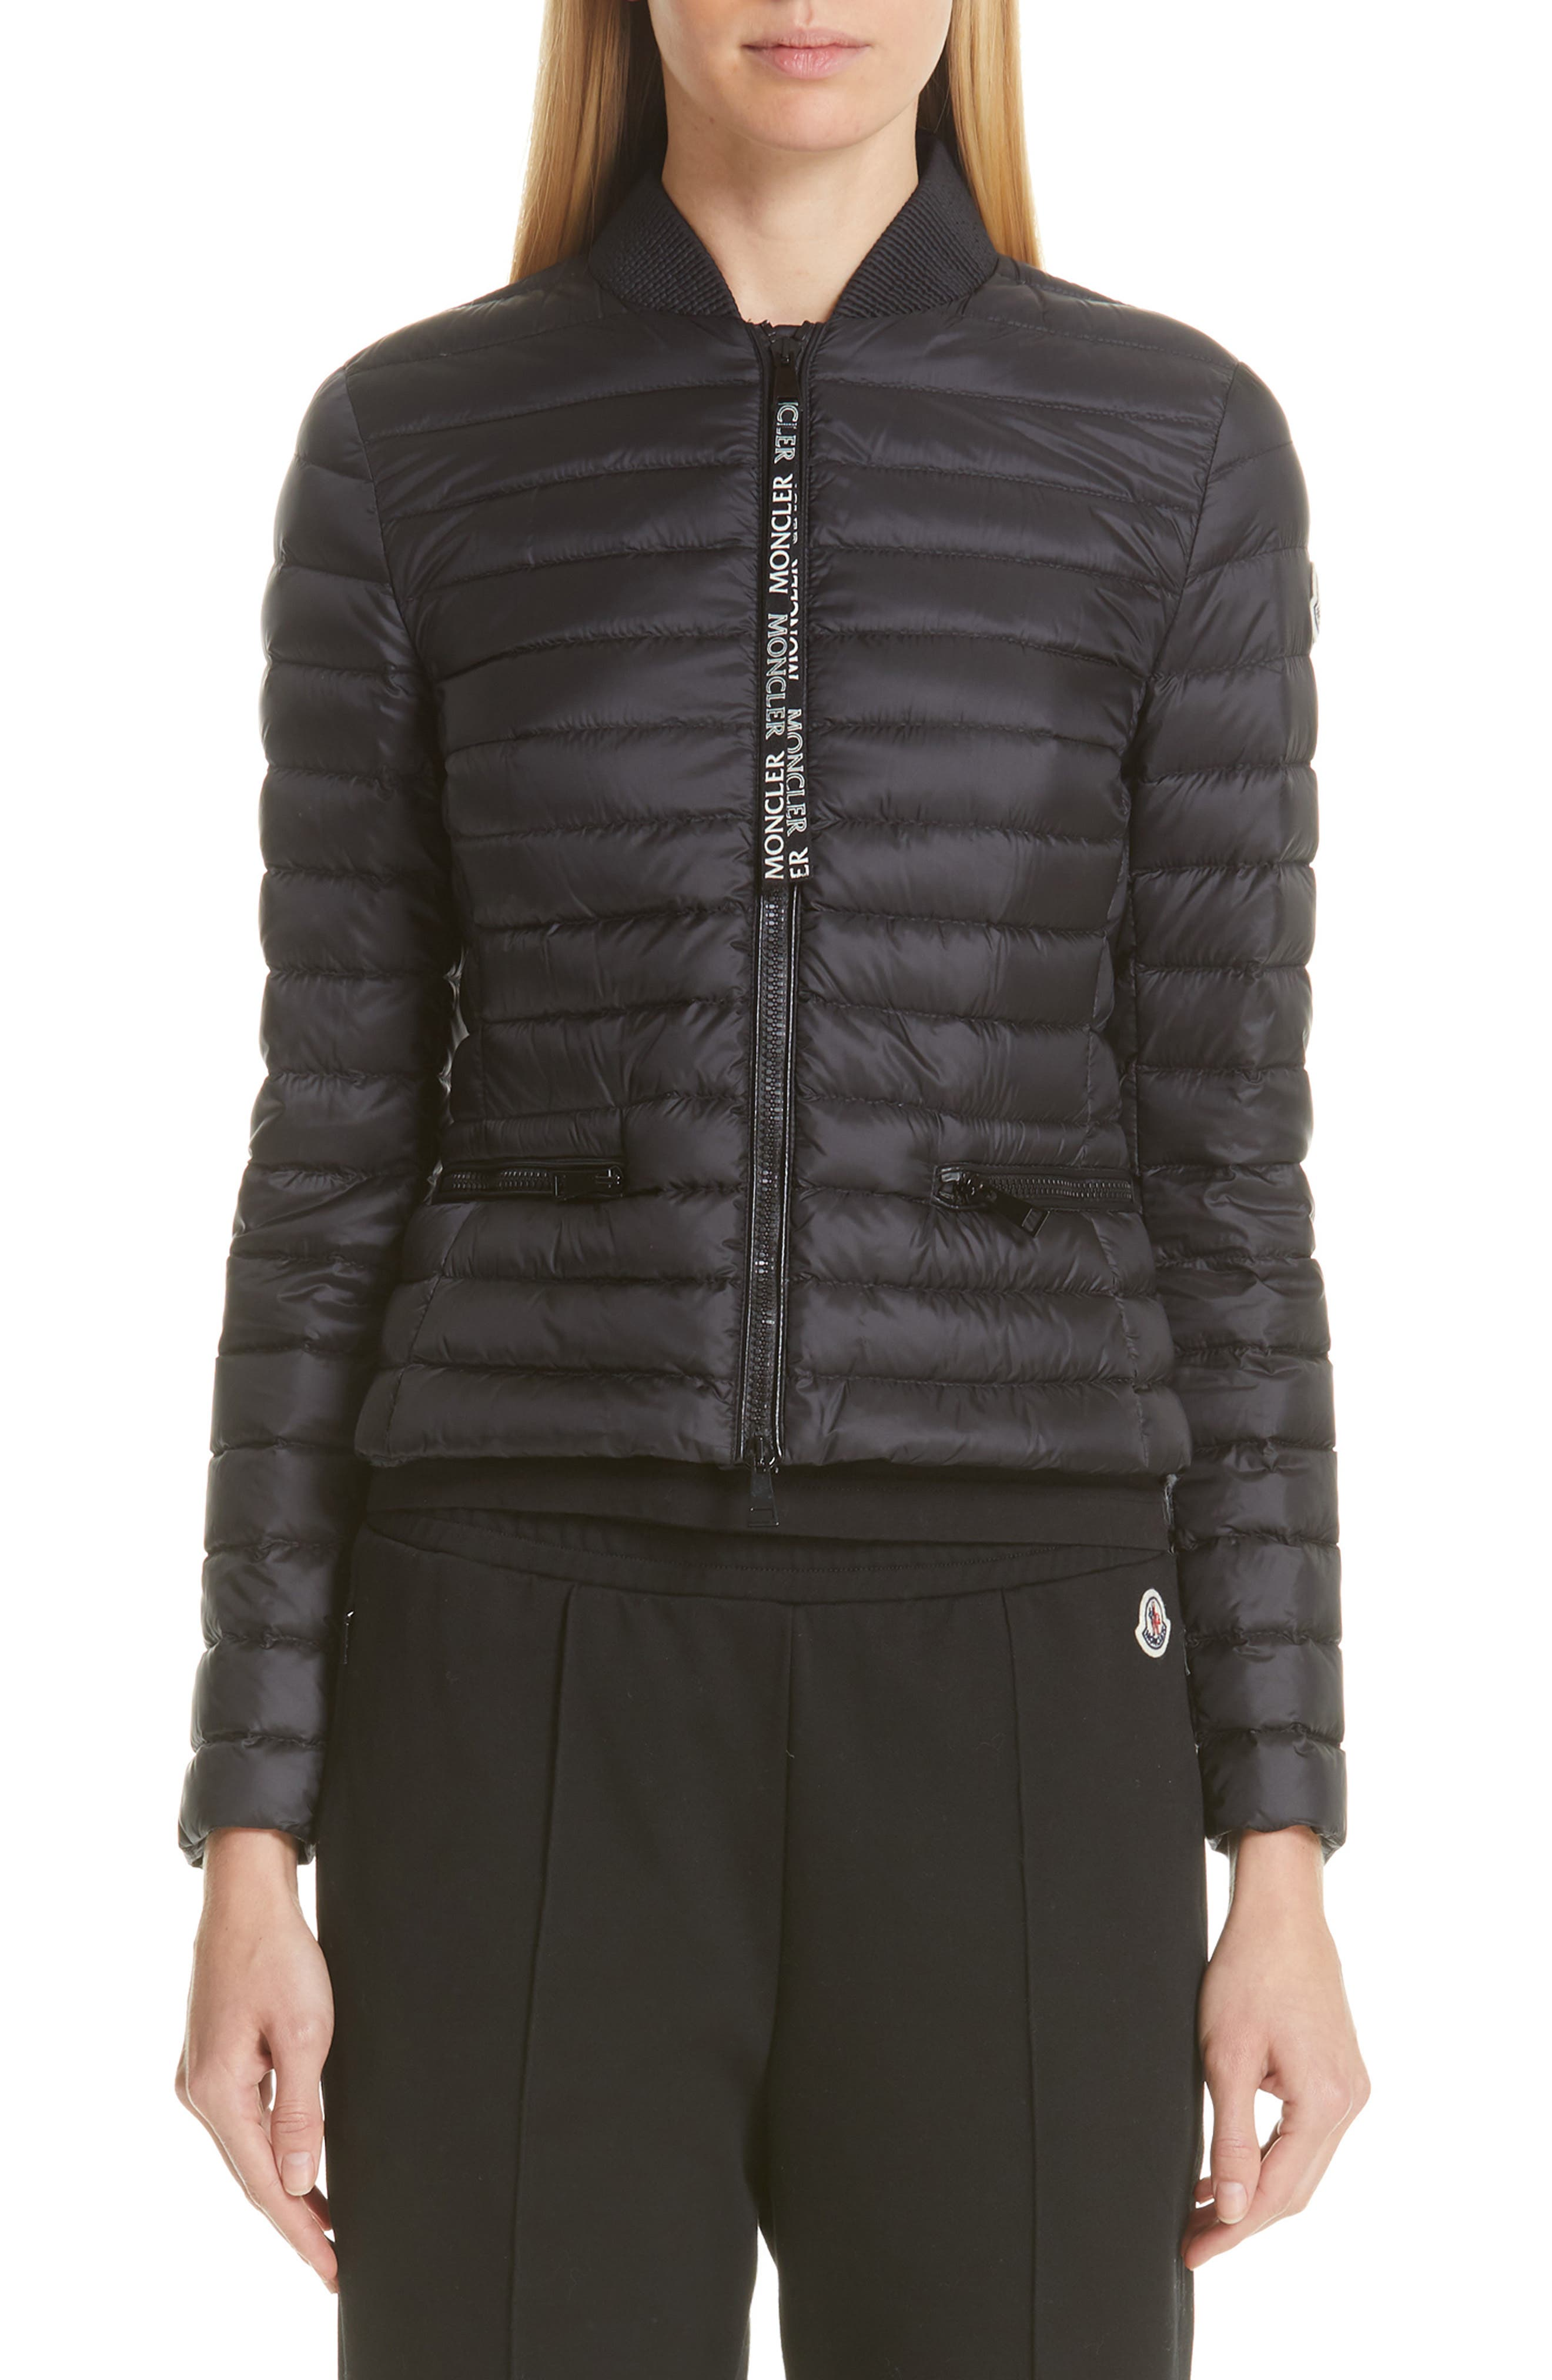 Blenca Quilted Down Jacket,                             Main thumbnail 1, color,                             BLACK